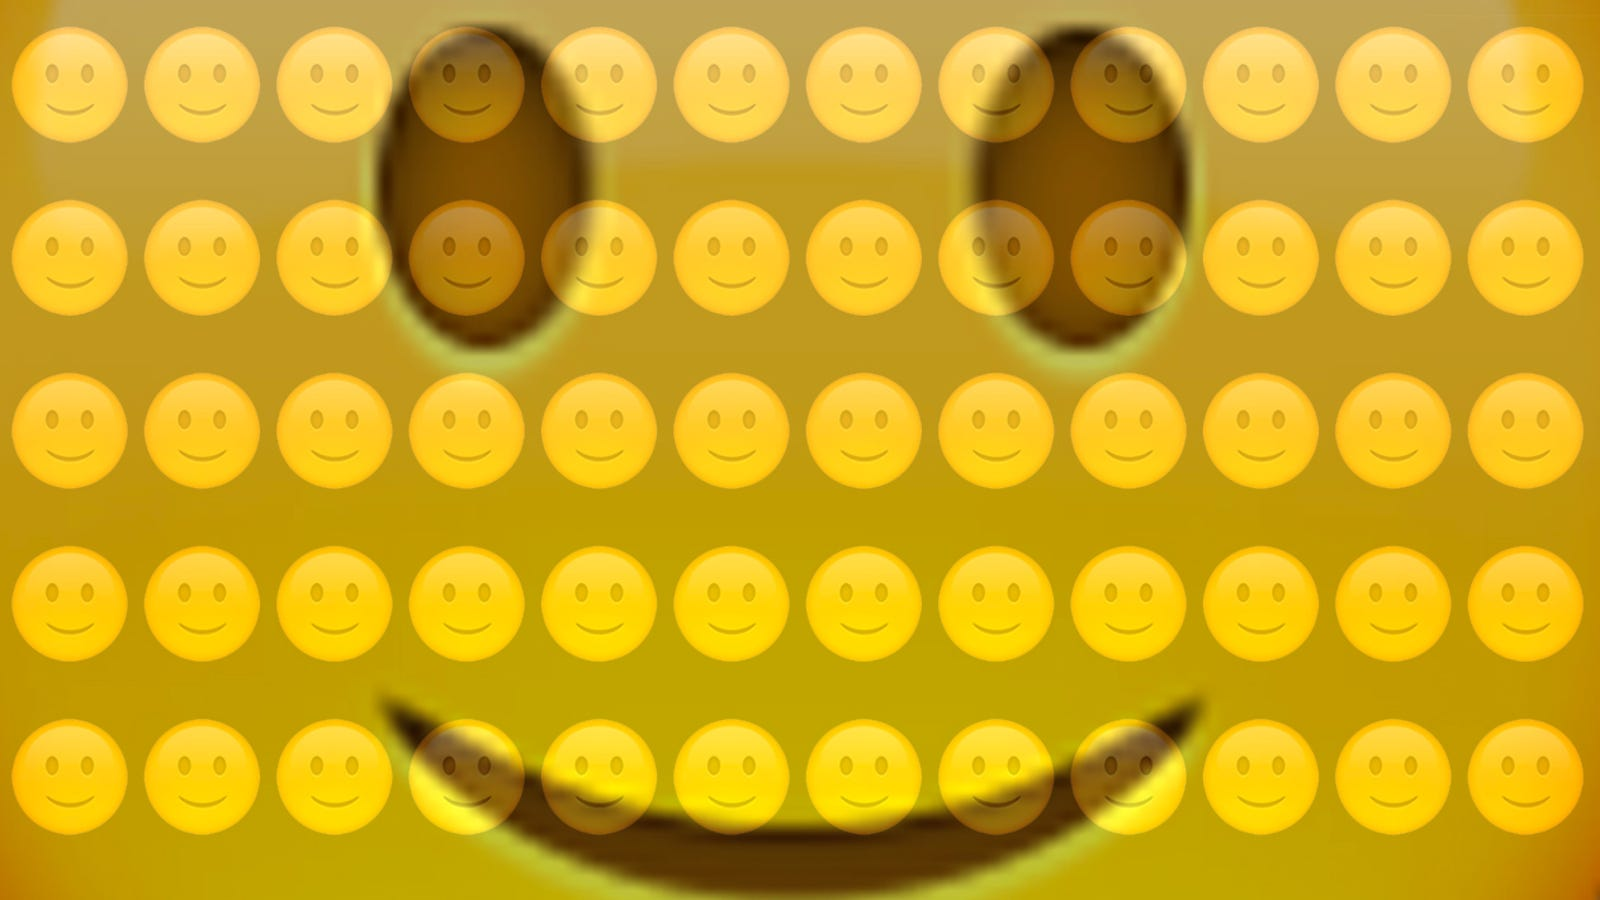 The Slightly Smiling Emoji Conveys the Complex Tragedy and Joy of